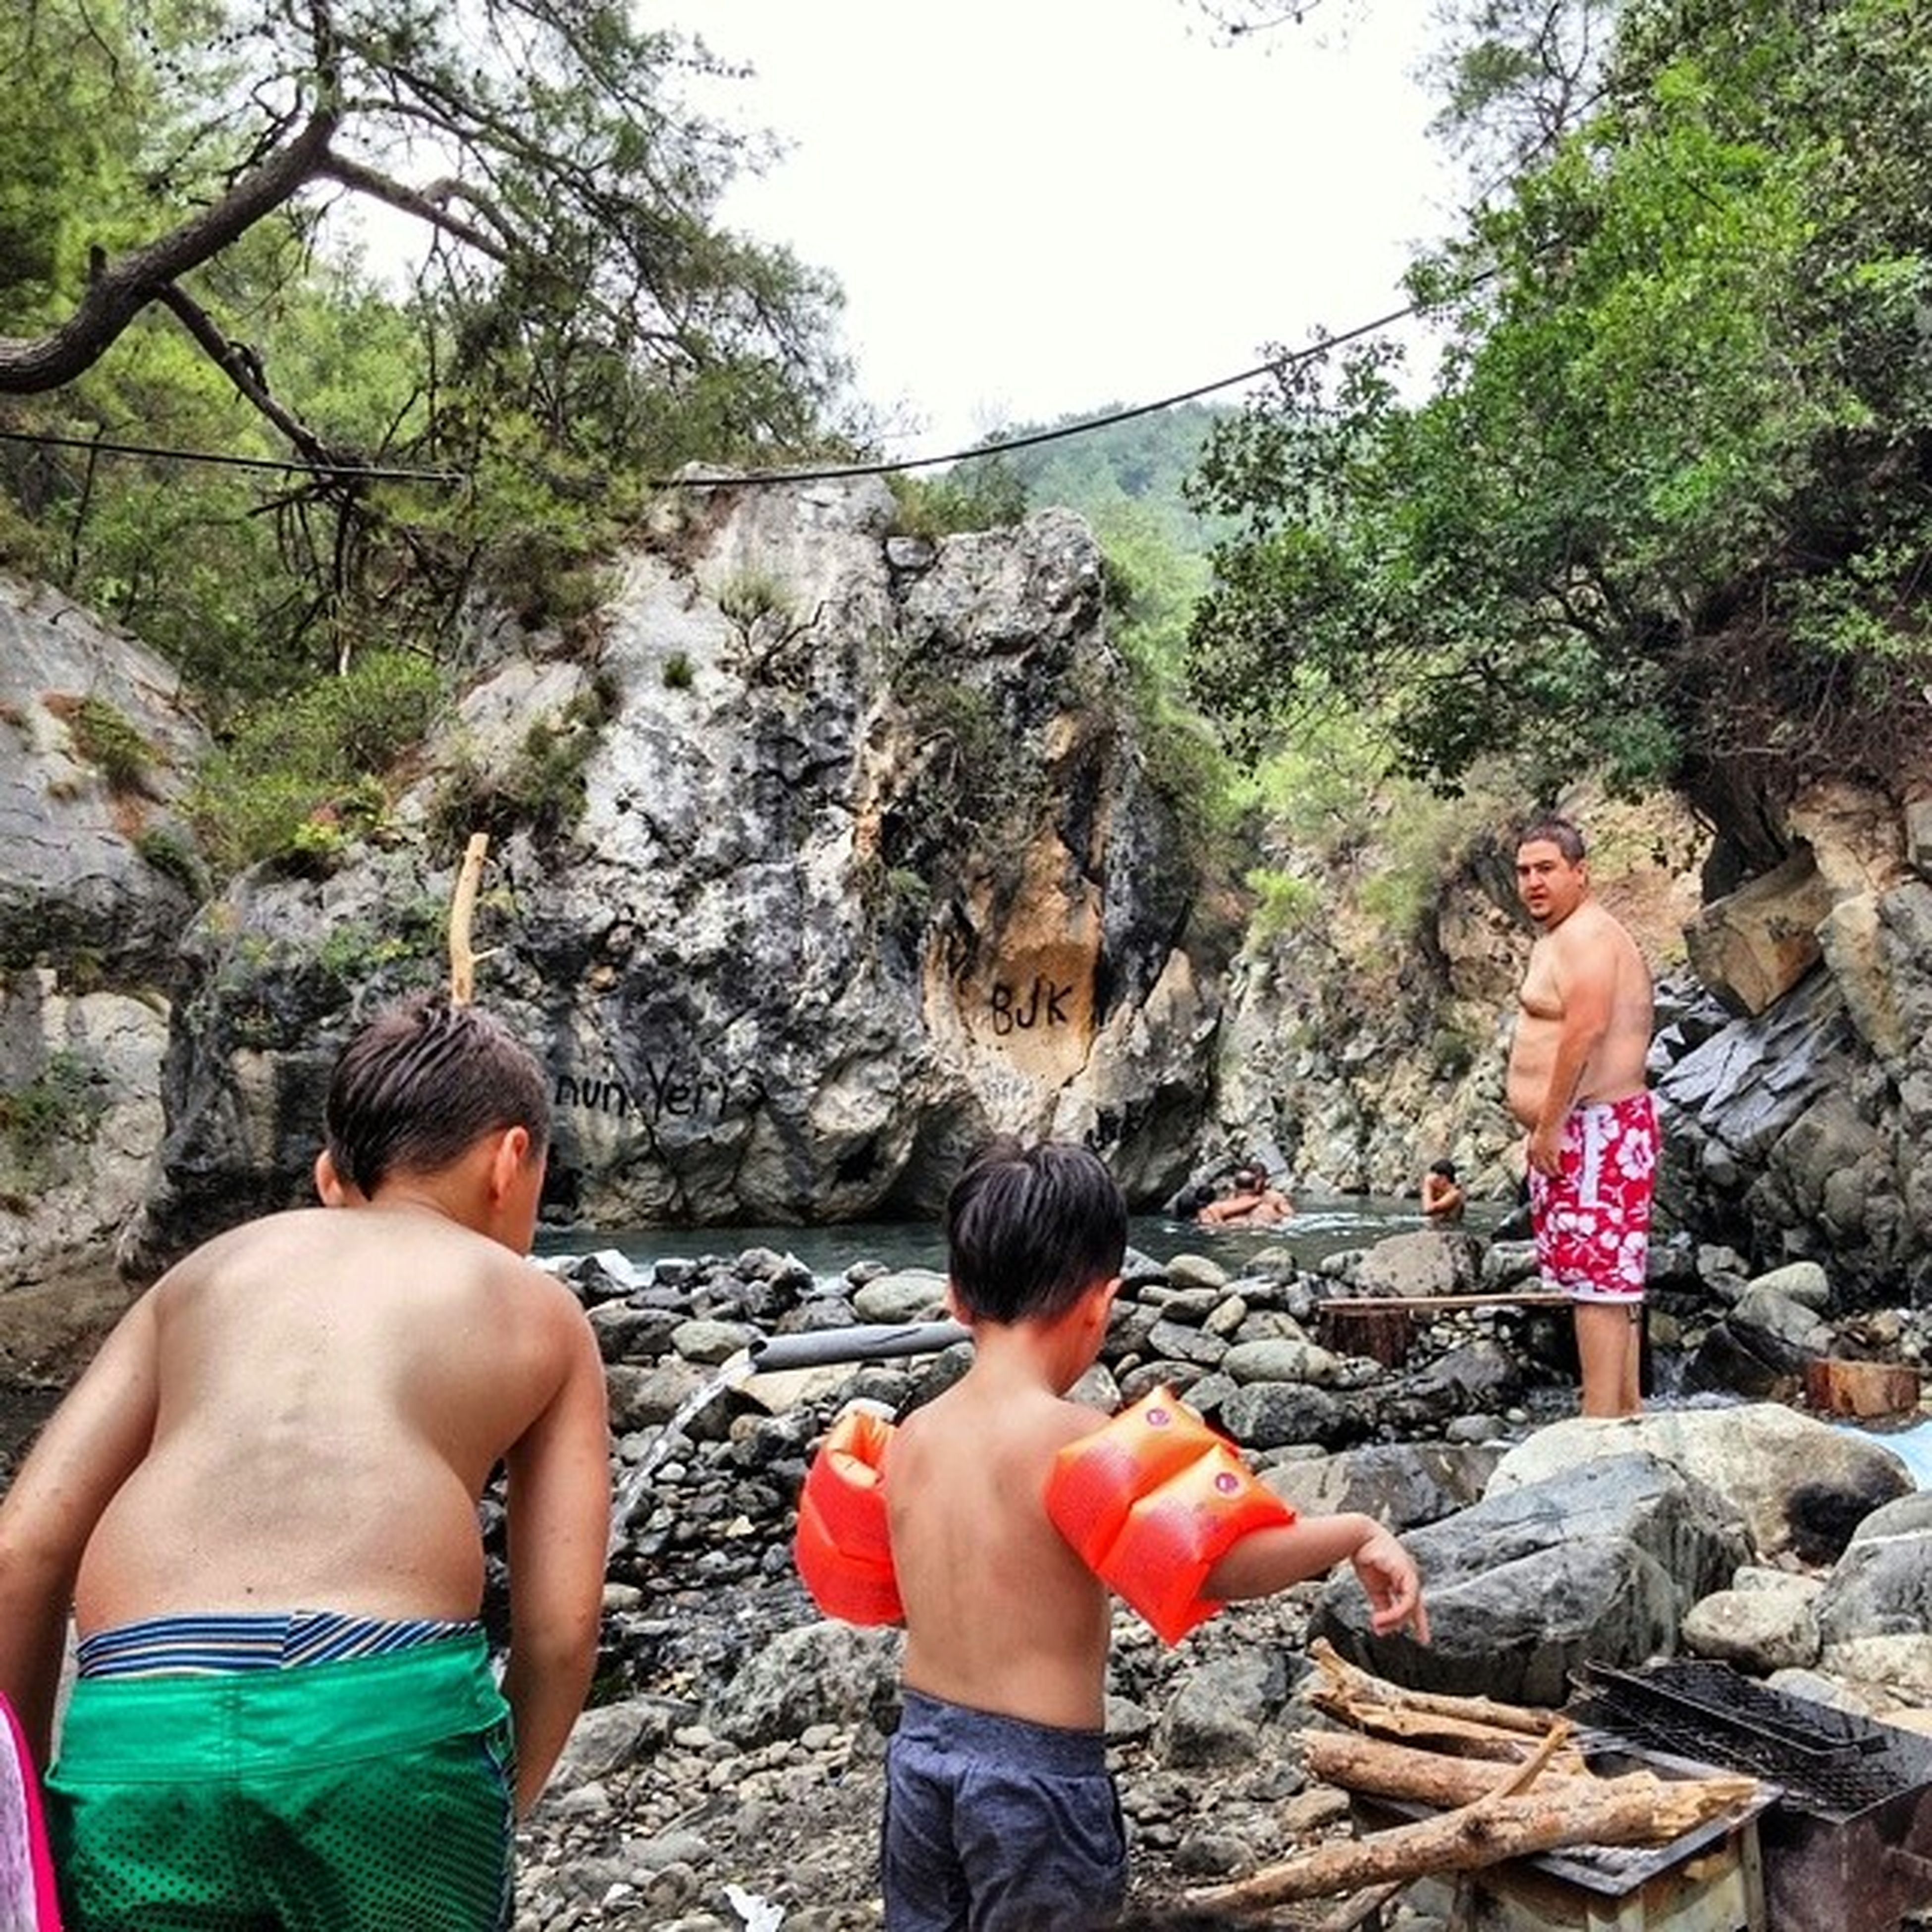 lifestyles, leisure activity, person, casual clothing, rock - object, togetherness, childhood, tree, bonding, love, standing, vacations, full length, elementary age, young adult, boys, three quarter length